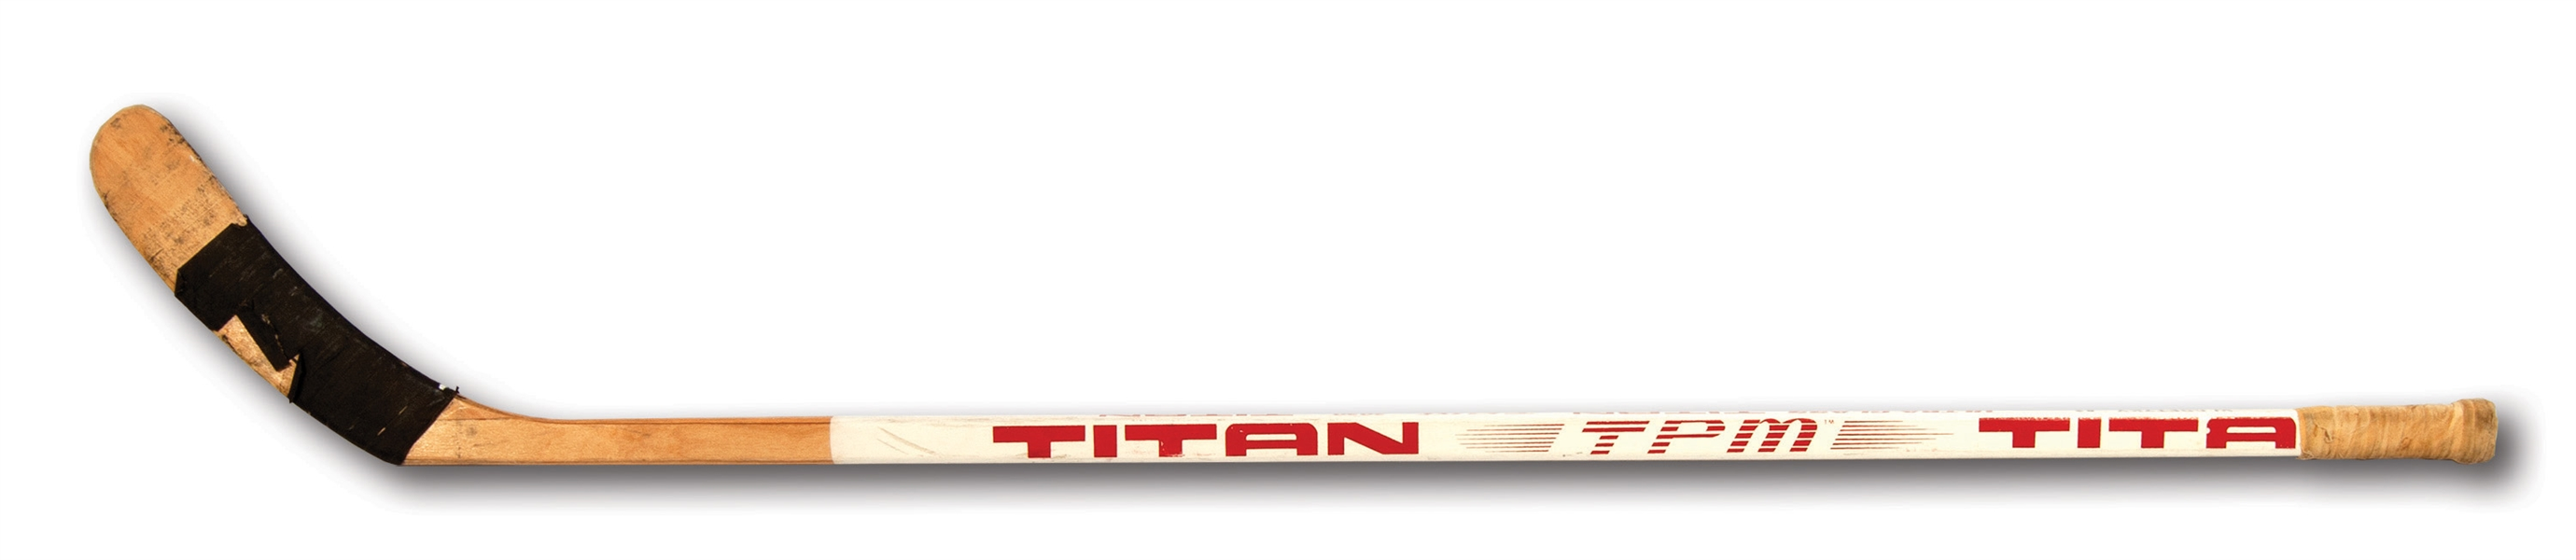 1982-83 WAYNE GRETZKY SIGNED & INSCRIBED EDMONTON OILERS GAME USED TITAN STICK (CANUCKS EMPLOYEE PROVENANCE)